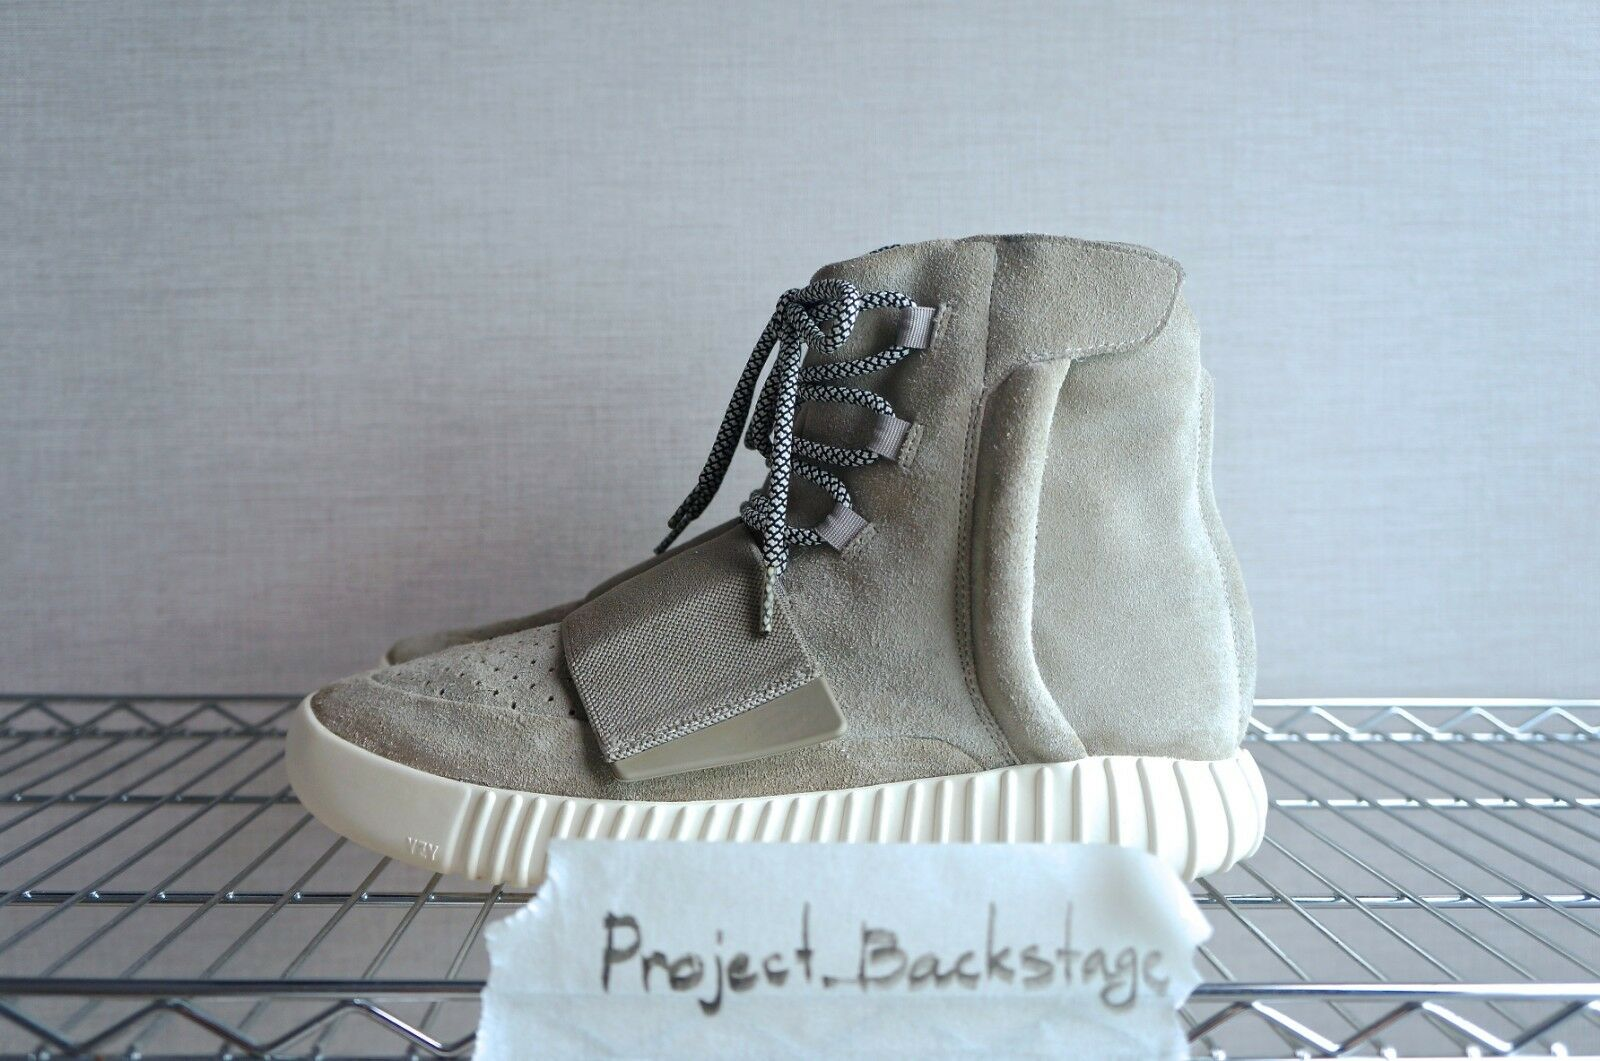 ADIDAS YEEZY 750 BOOST LIGHT BROWN OG SIZE 10US 44% AUTHENTIC